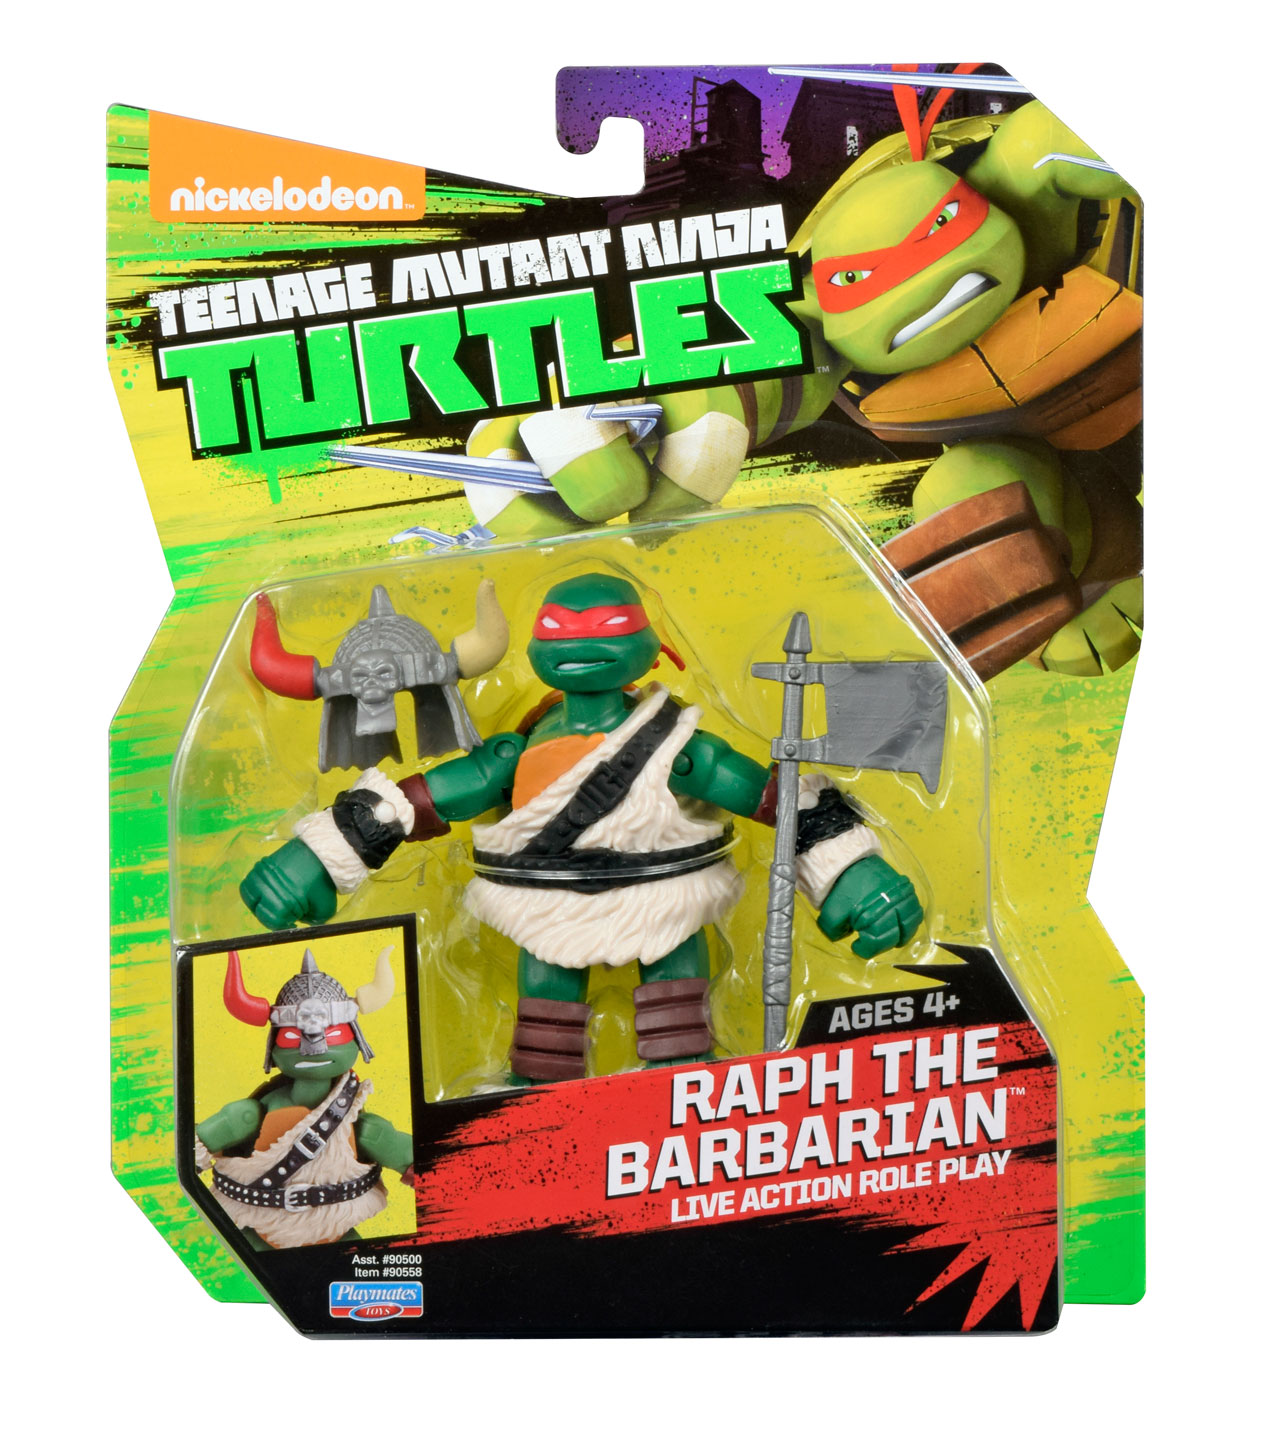 Toys For Boys 12 And Up : Teenage mutant ninja turtles basic figure assorted